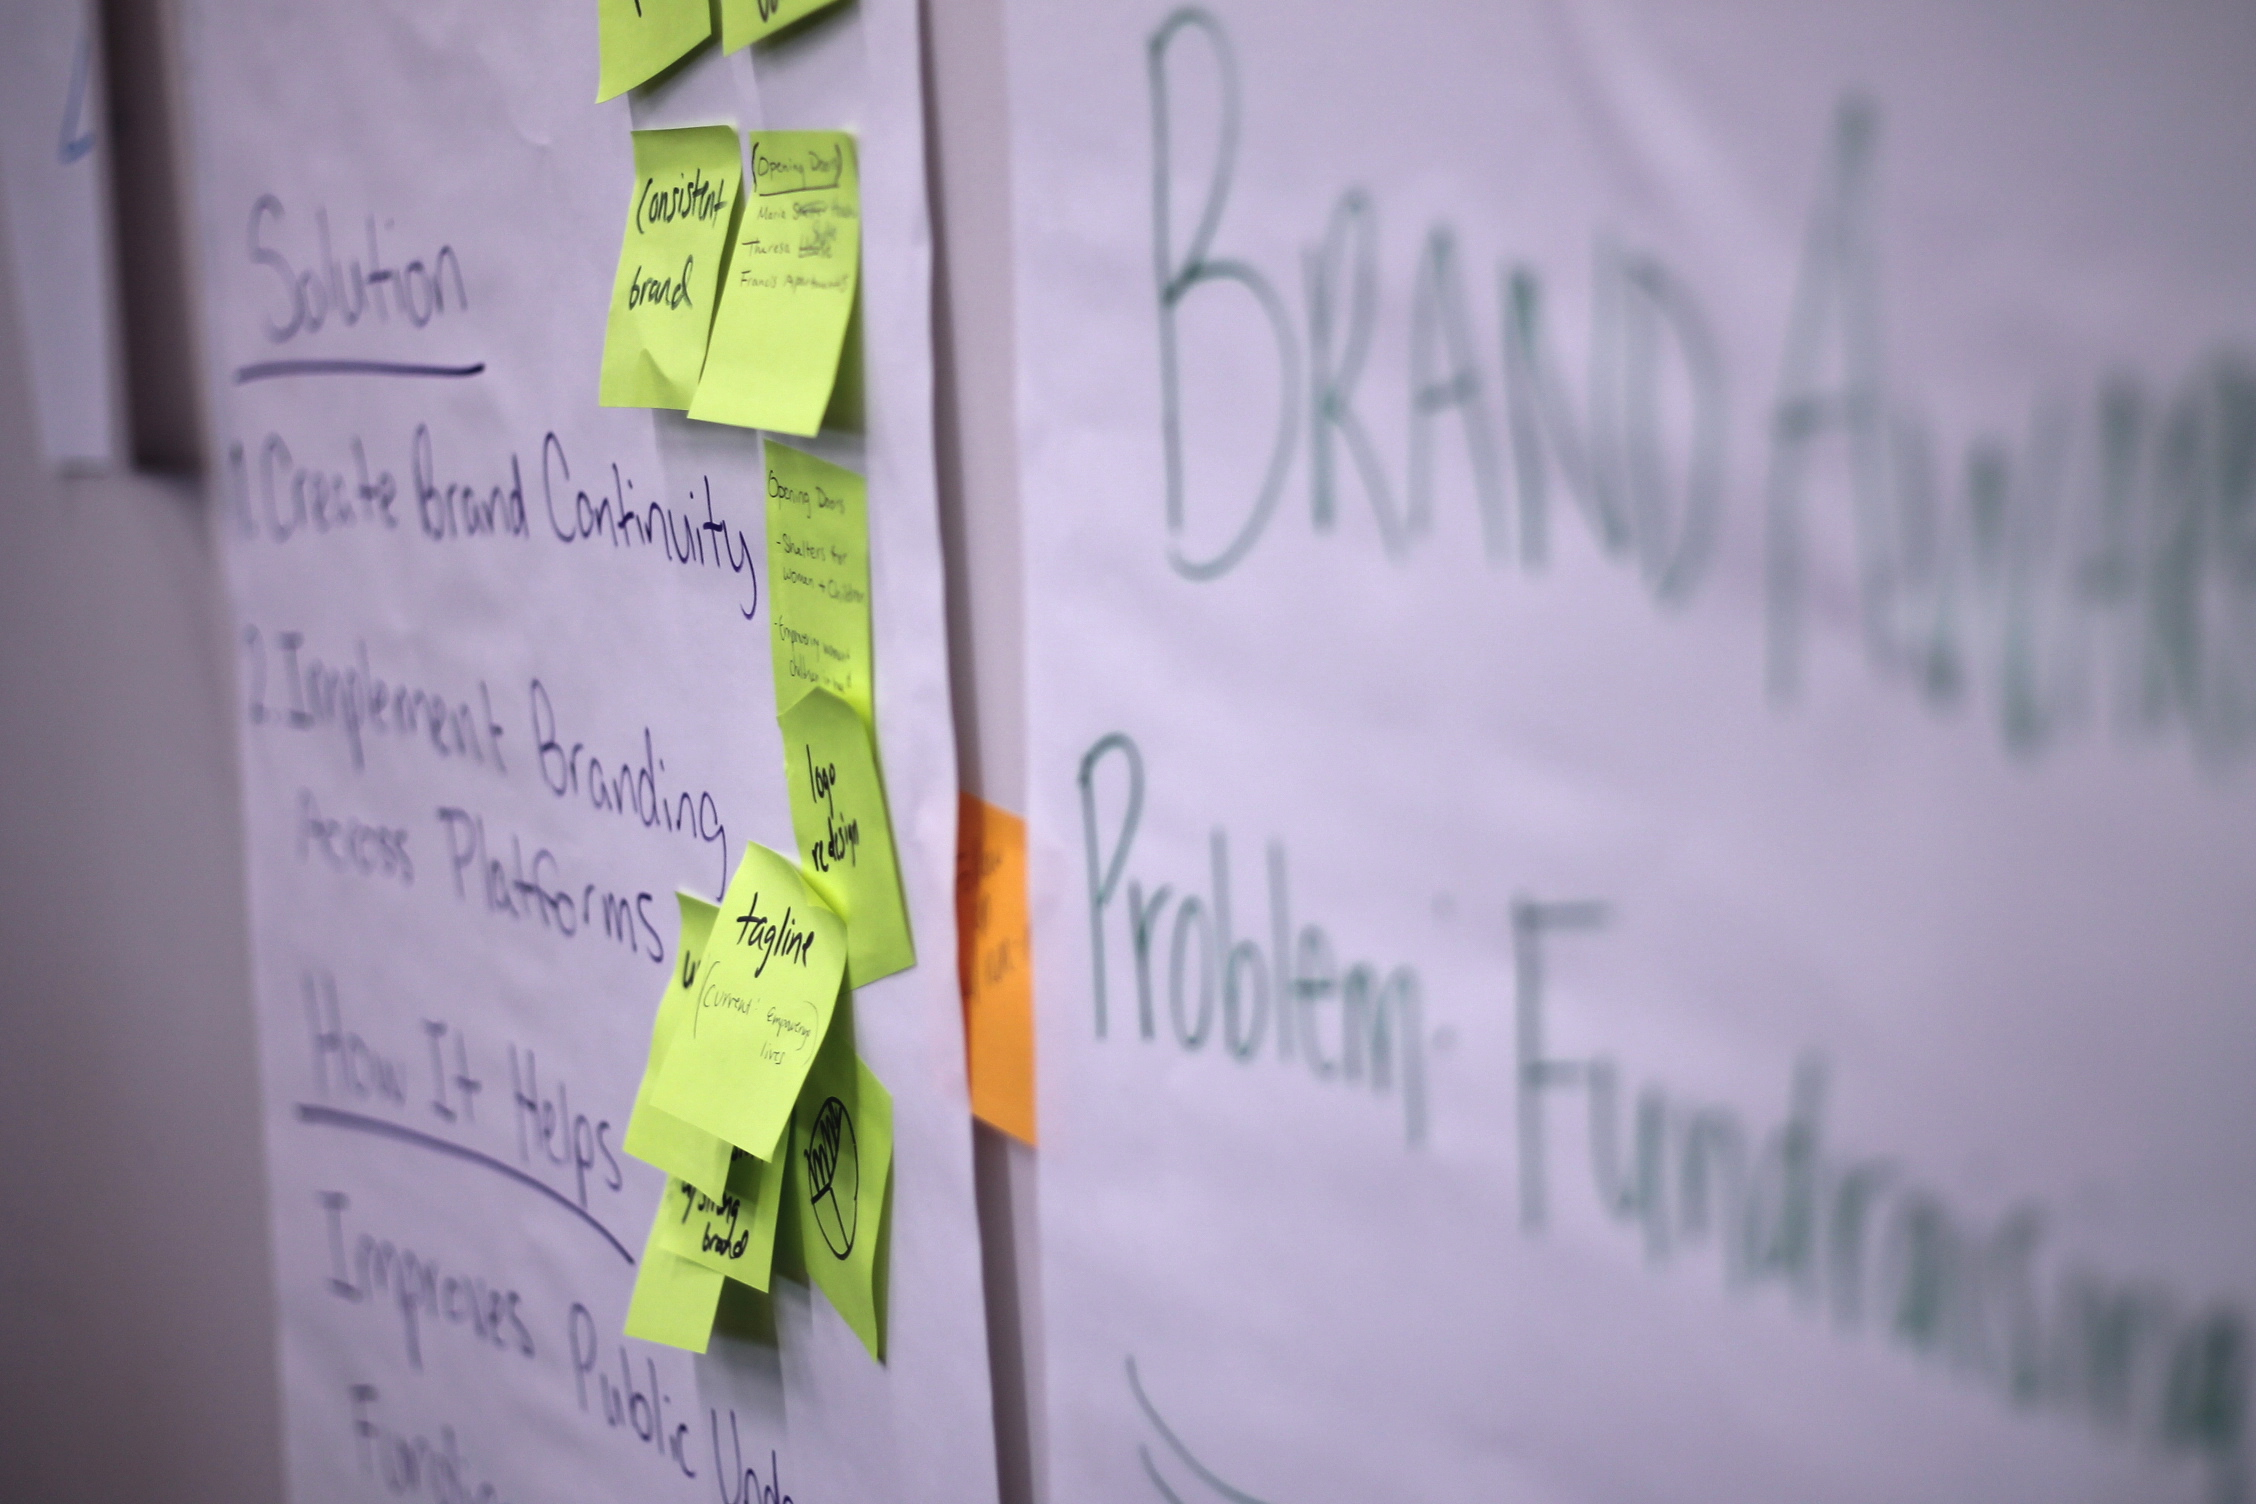 IDEAdash - Create ideas to move a core priority forward and help your team learn effective ideation techniques. Over the course of 3-4 hours, we lead your team (12 or more) through a series of rapid ideation sessions around topics you choose.